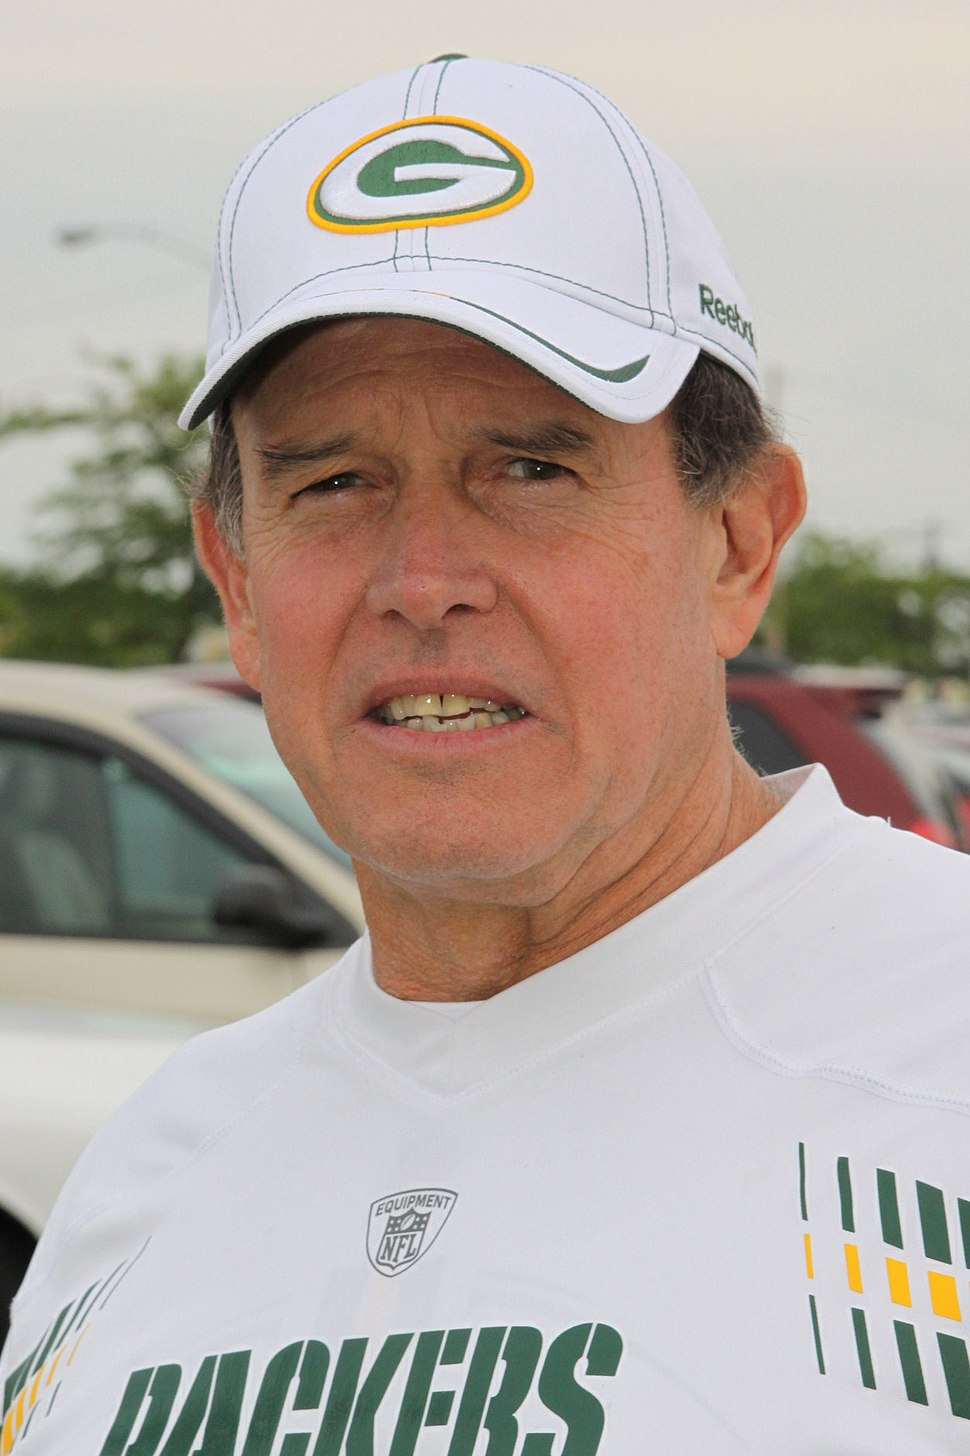 Head and shoulders photograph of Capers wearing a white Green Bay Packers t-shirt and white Packers baseball cap